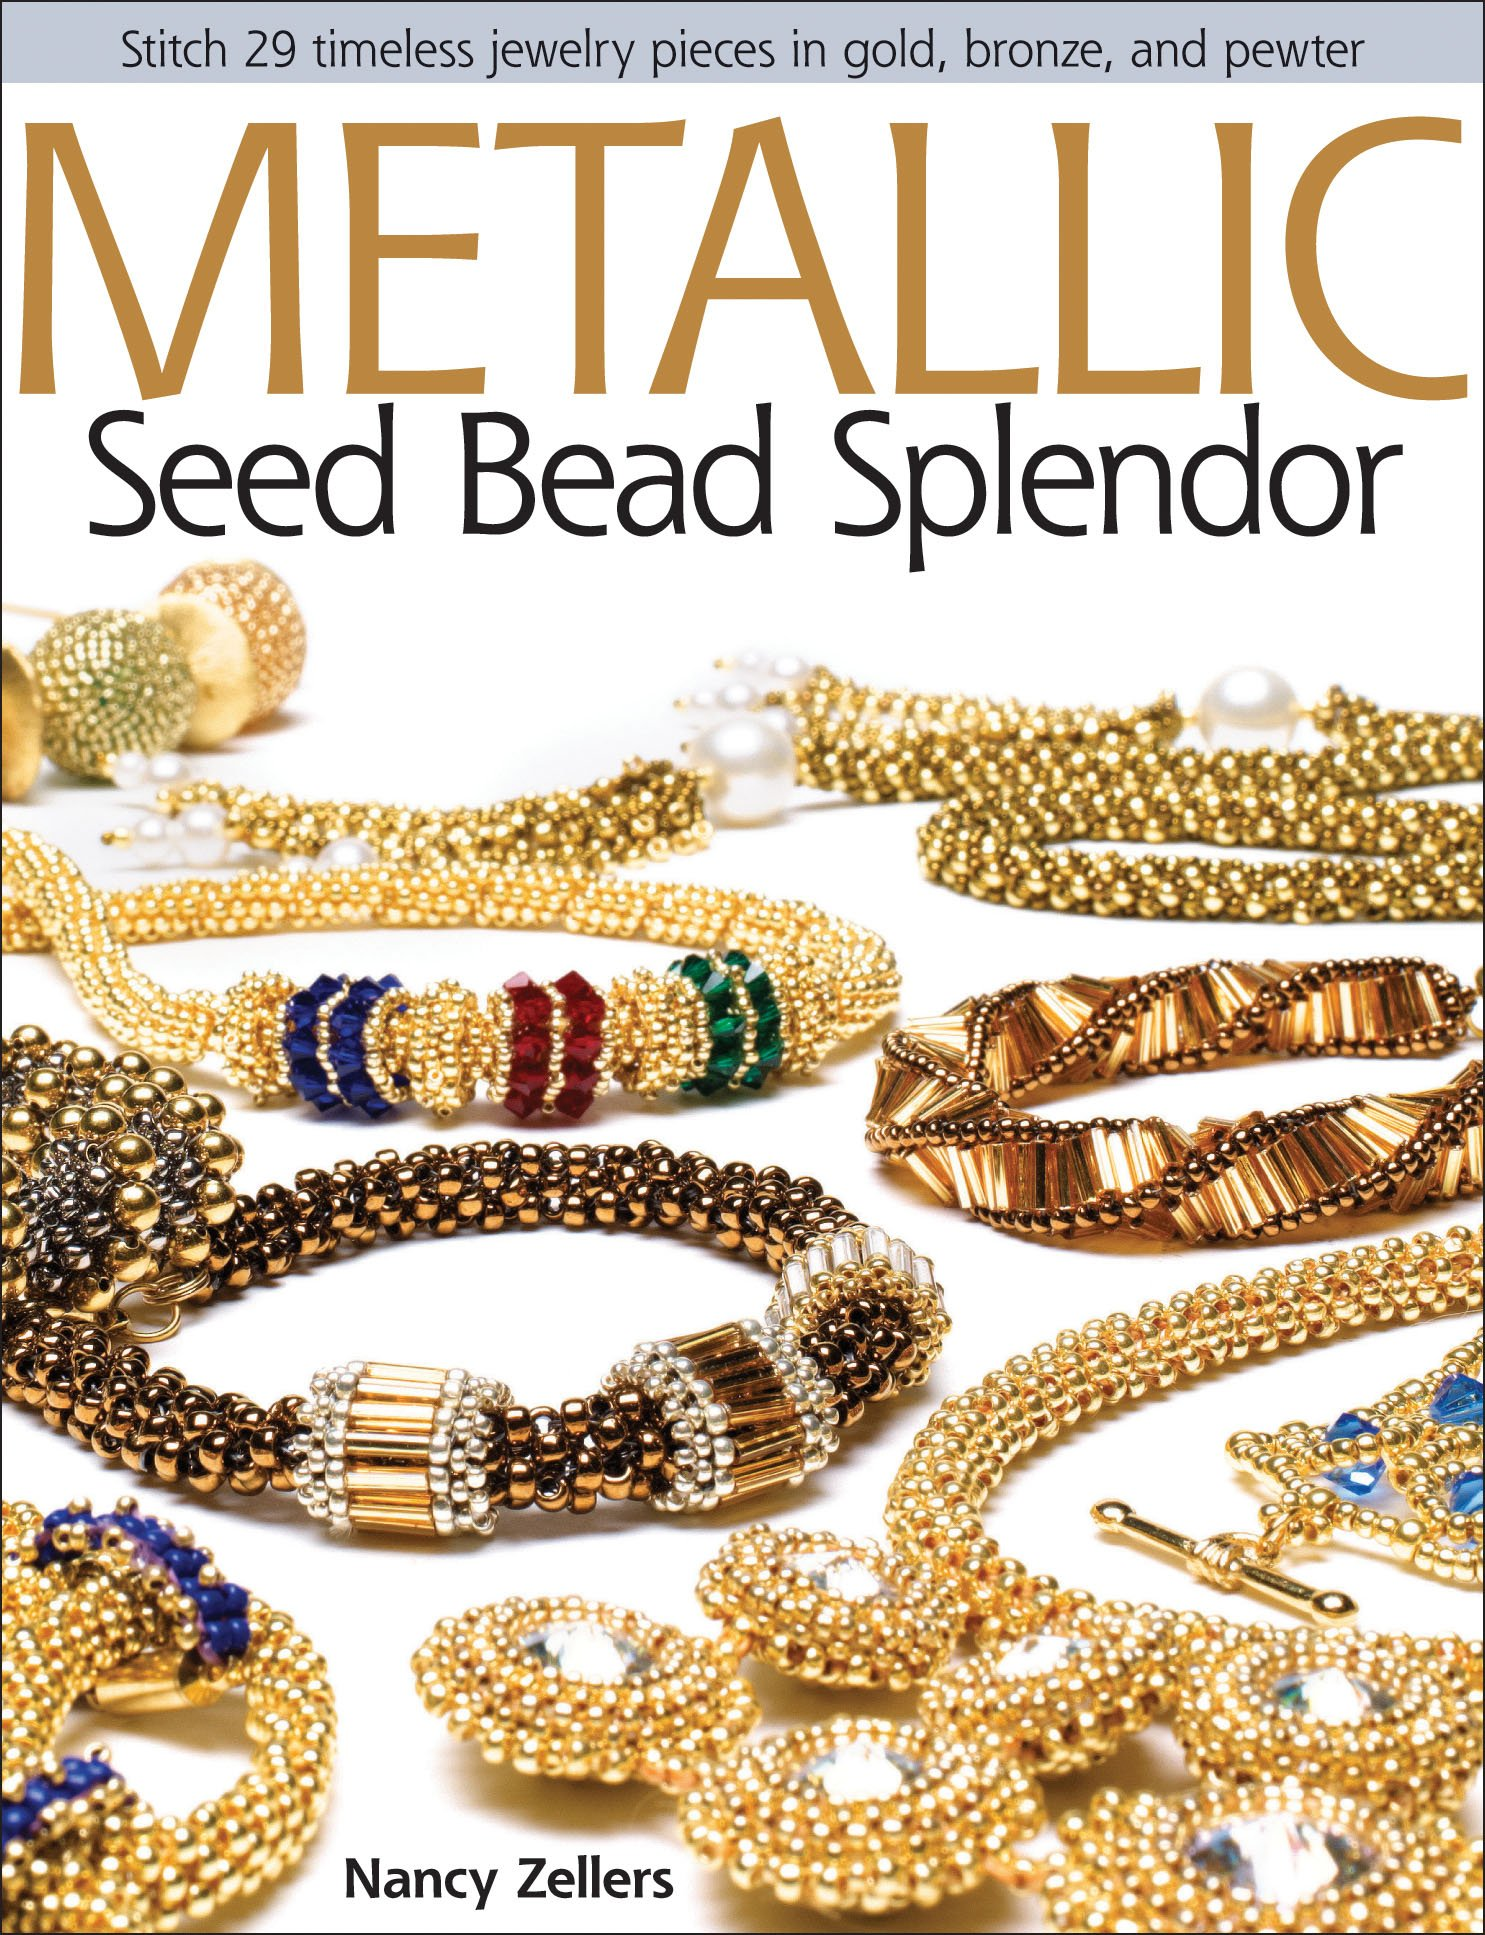 Metallic Seed Bead Splendor: Stitch 29 Timeless Jewelry Pieces in Gold, Bronze, and Pewter by Kalmbach Books